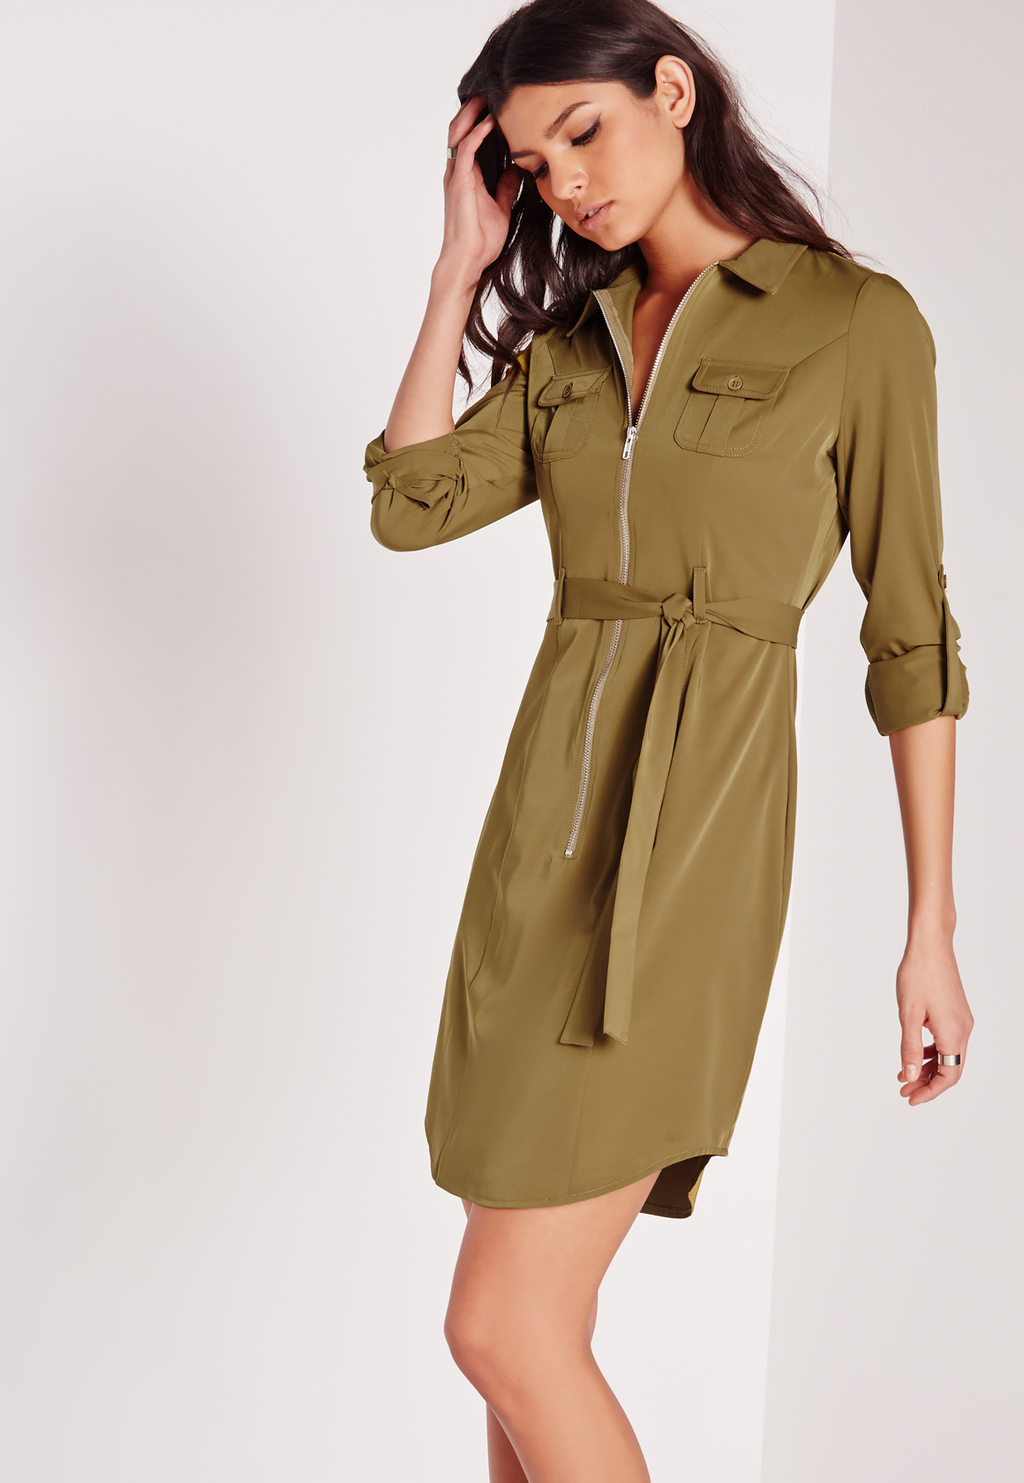 Tall Exclusive Zip Through Mini Shirt Dress Khaki, Beige - style: shirt; neckline: shirt collar/peter pan/zip with opening; pattern: plain; waist detail: belted waist/tie at waist/drawstring; bust detail: subtle bust detail; predominant colour: khaki; occasions: casual; length: just above the knee; fit: body skimming; fibres: viscose/rayon - 100%; sleeve length: 3/4 length; sleeve style: standard; pattern type: fabric; texture group: other - light to midweight; embellishment: zips; season: s/s 2016; wardrobe: highlight; embellishment location: bust